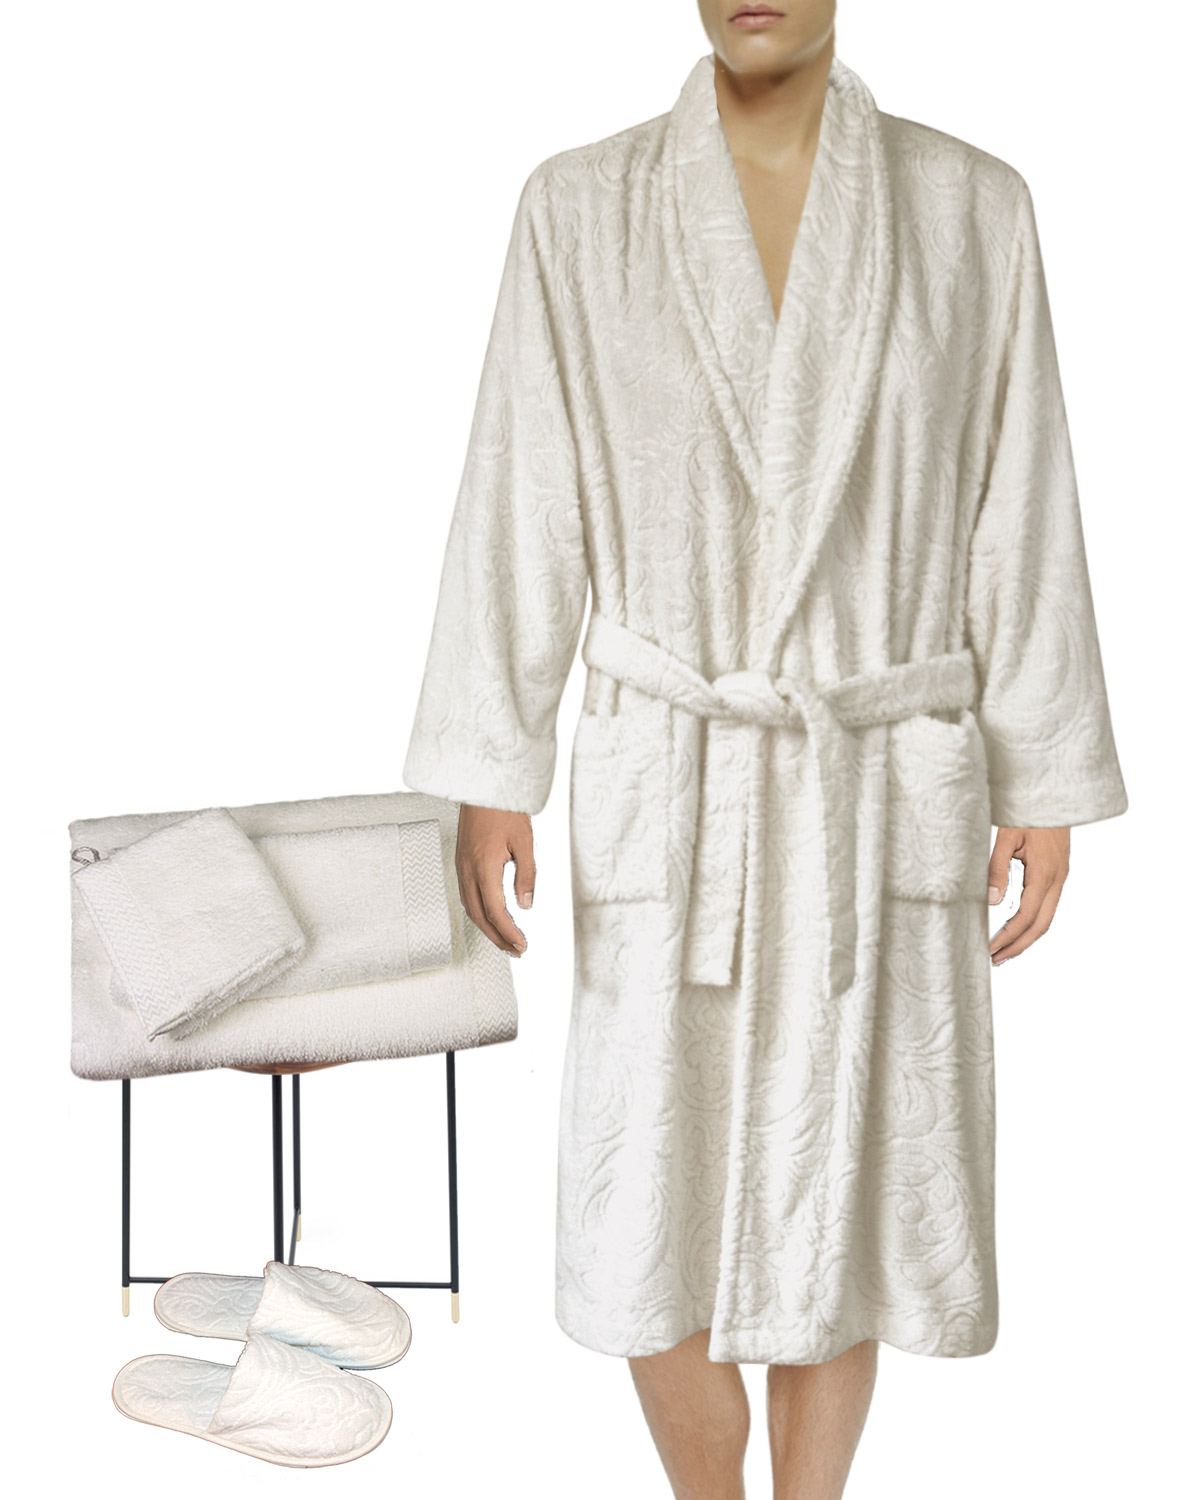 Lounge Robe, Slippers, Guest Hand , Hand Towels, Wash Mitt, White Tubéreuse Amour Collection